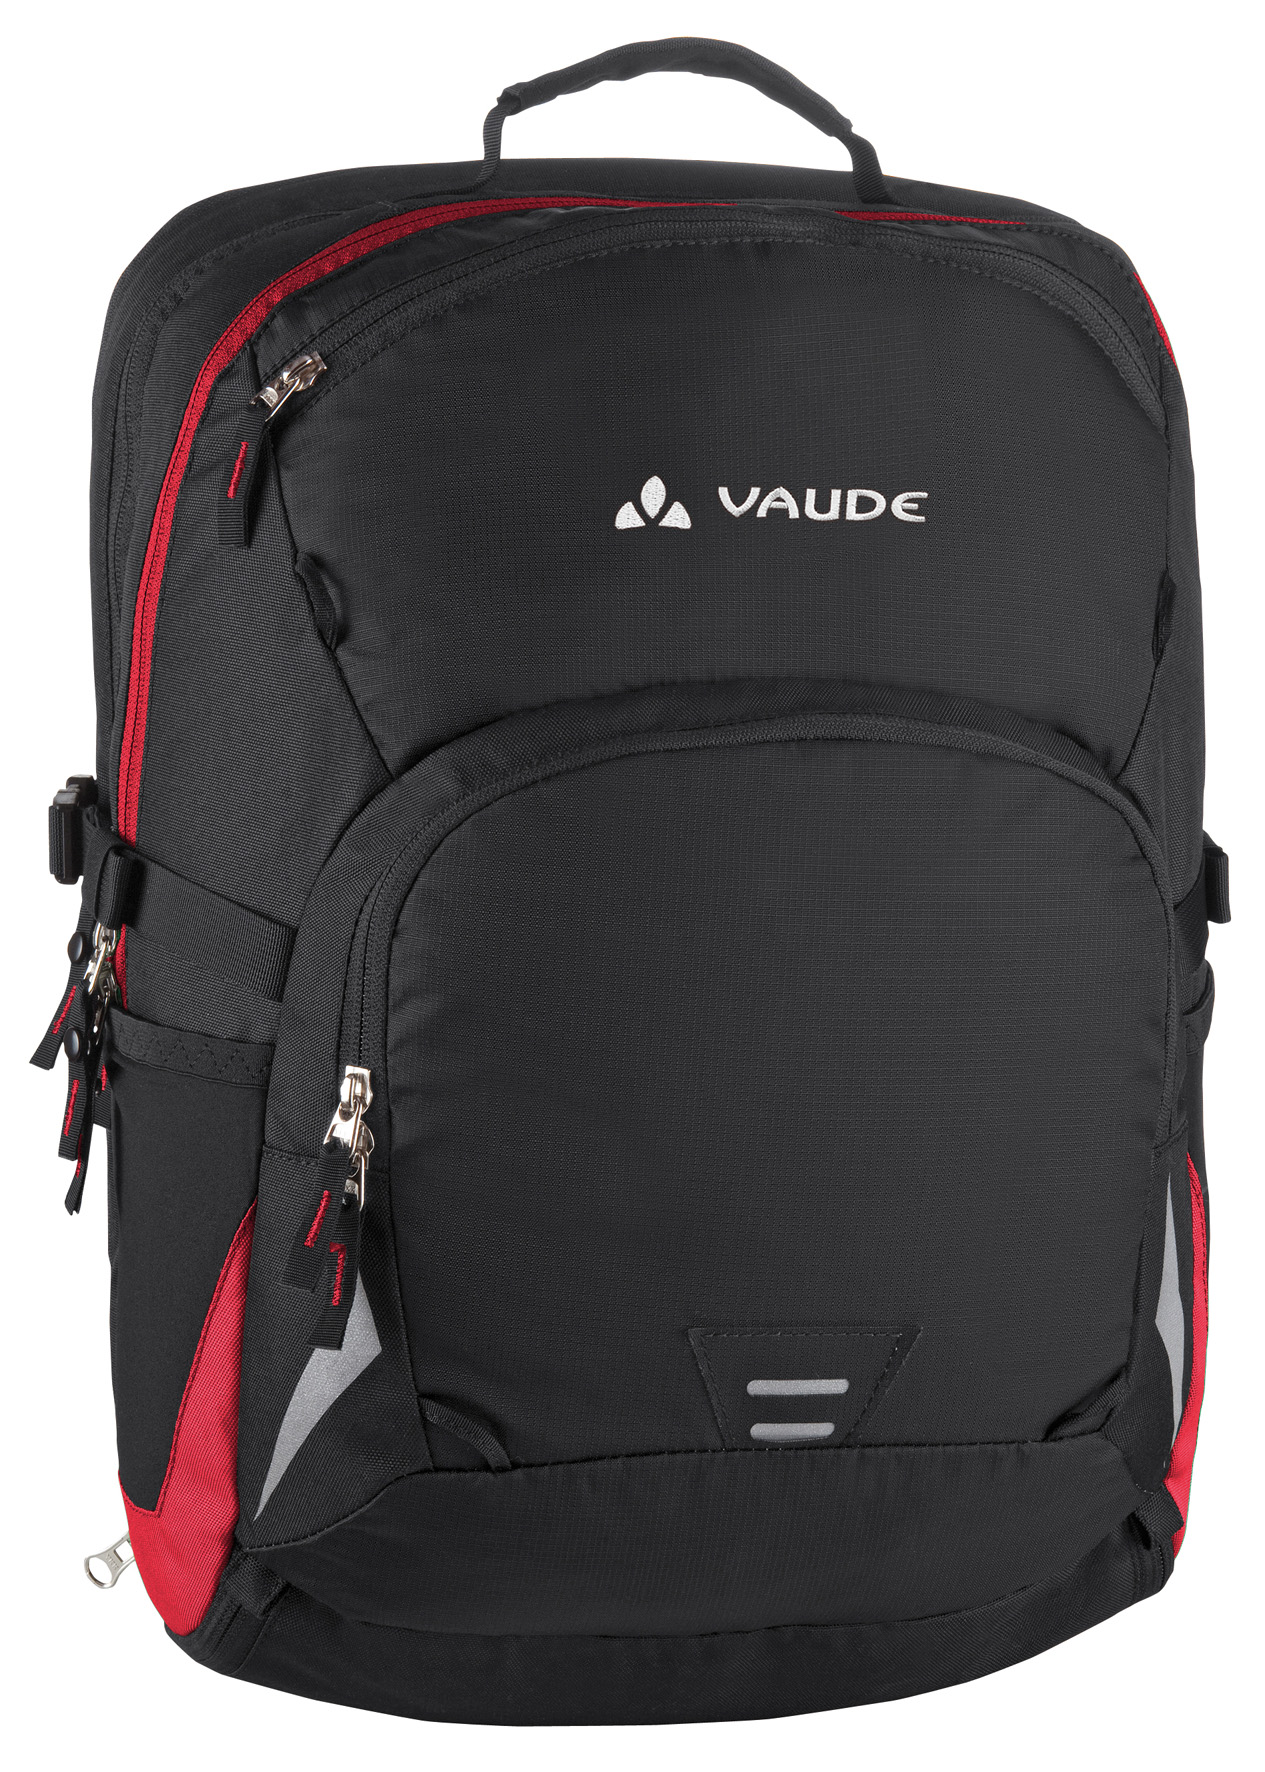 VAUDE Cycle 28 black/red  - schneider-sports